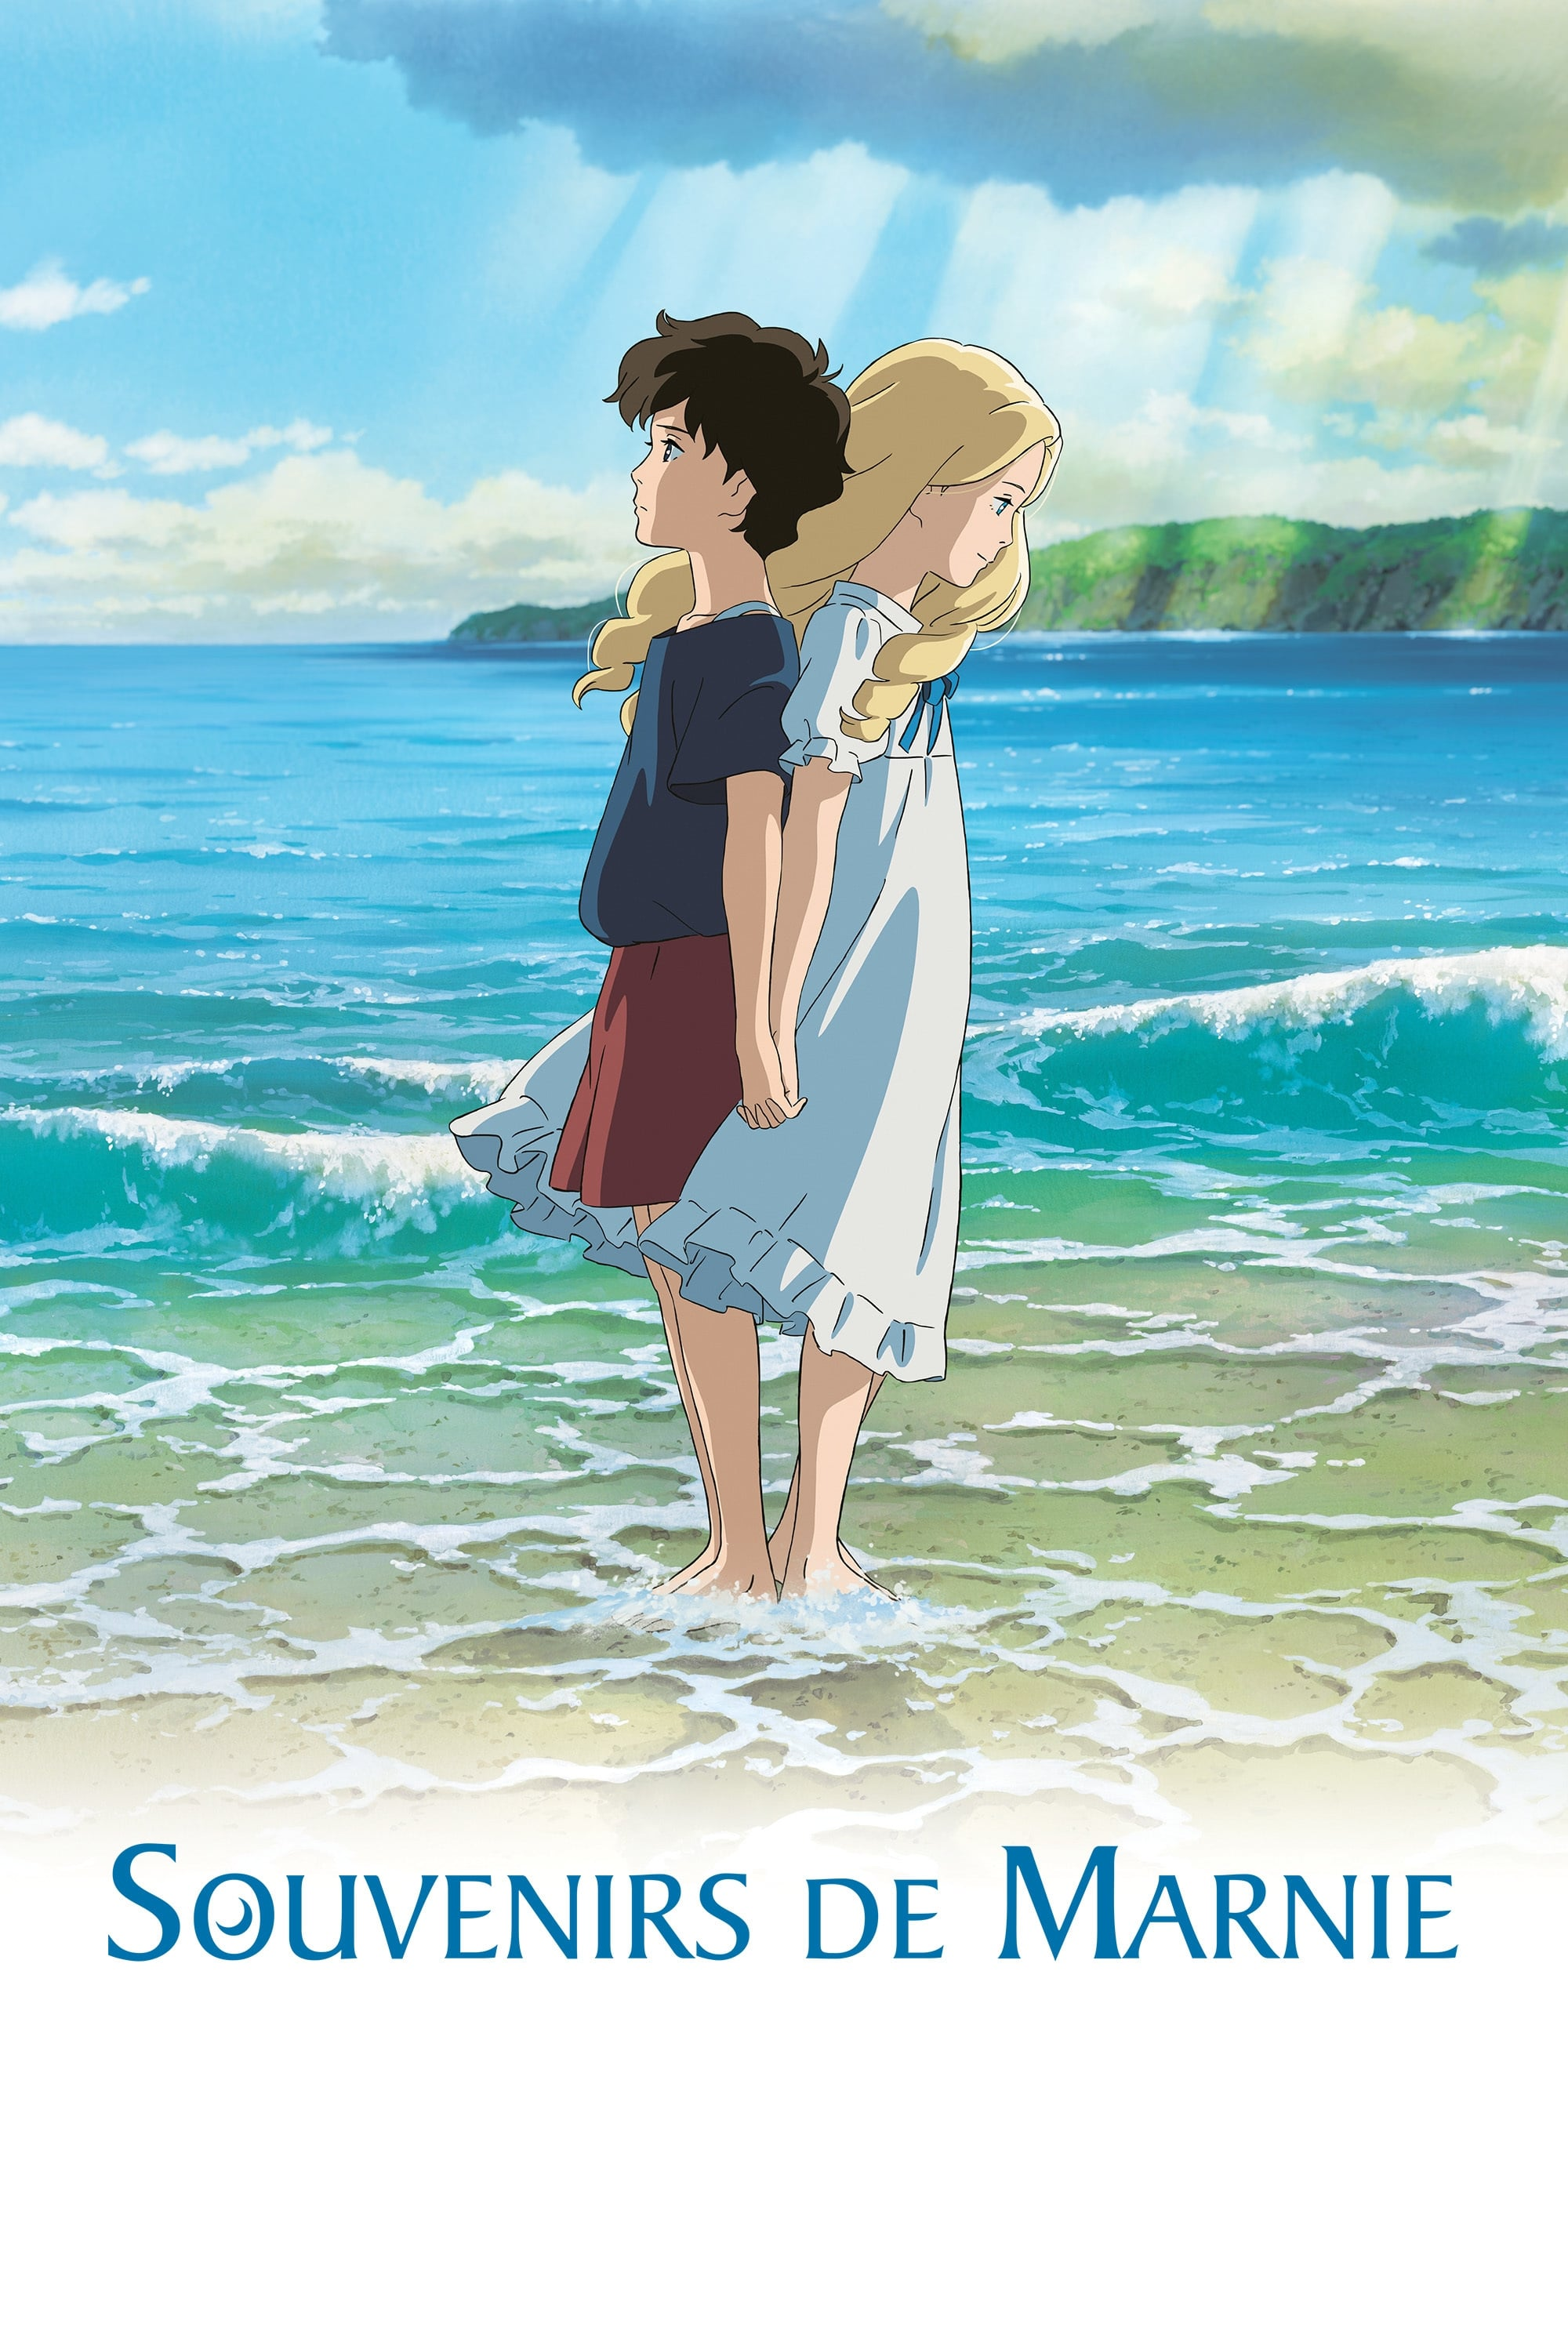 Souvenirs de Marnie streaming sur zone telechargement